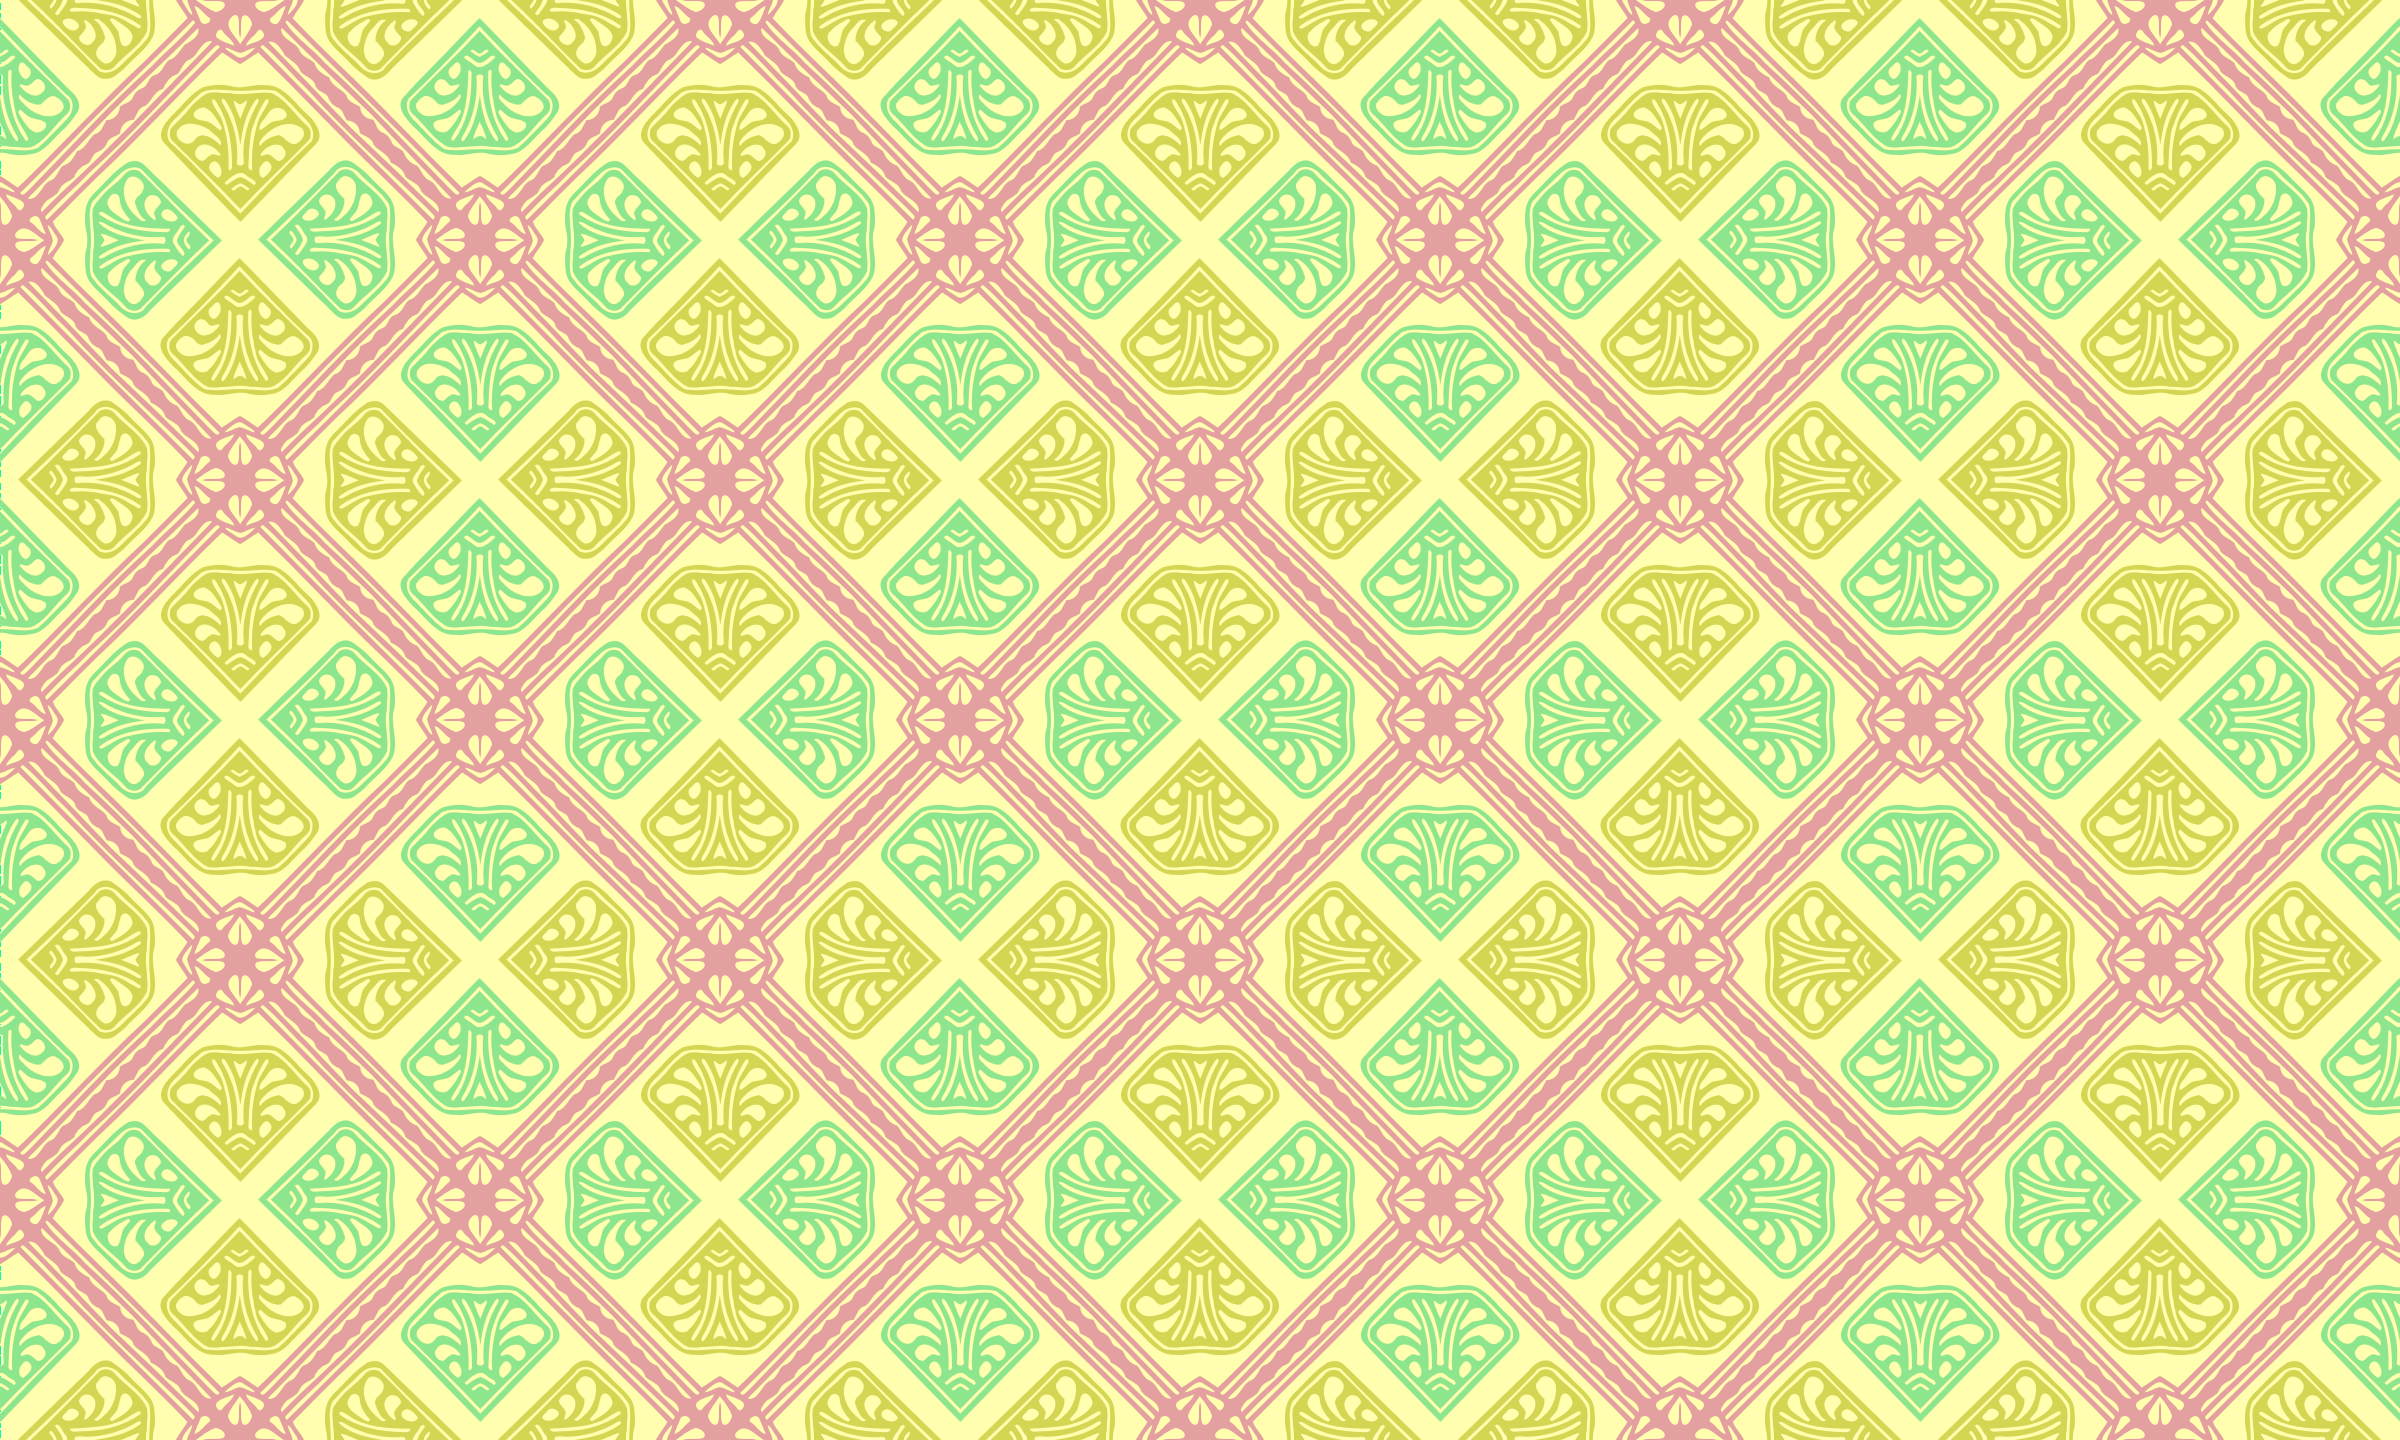 Background pattern 232 (colour) by Firkin